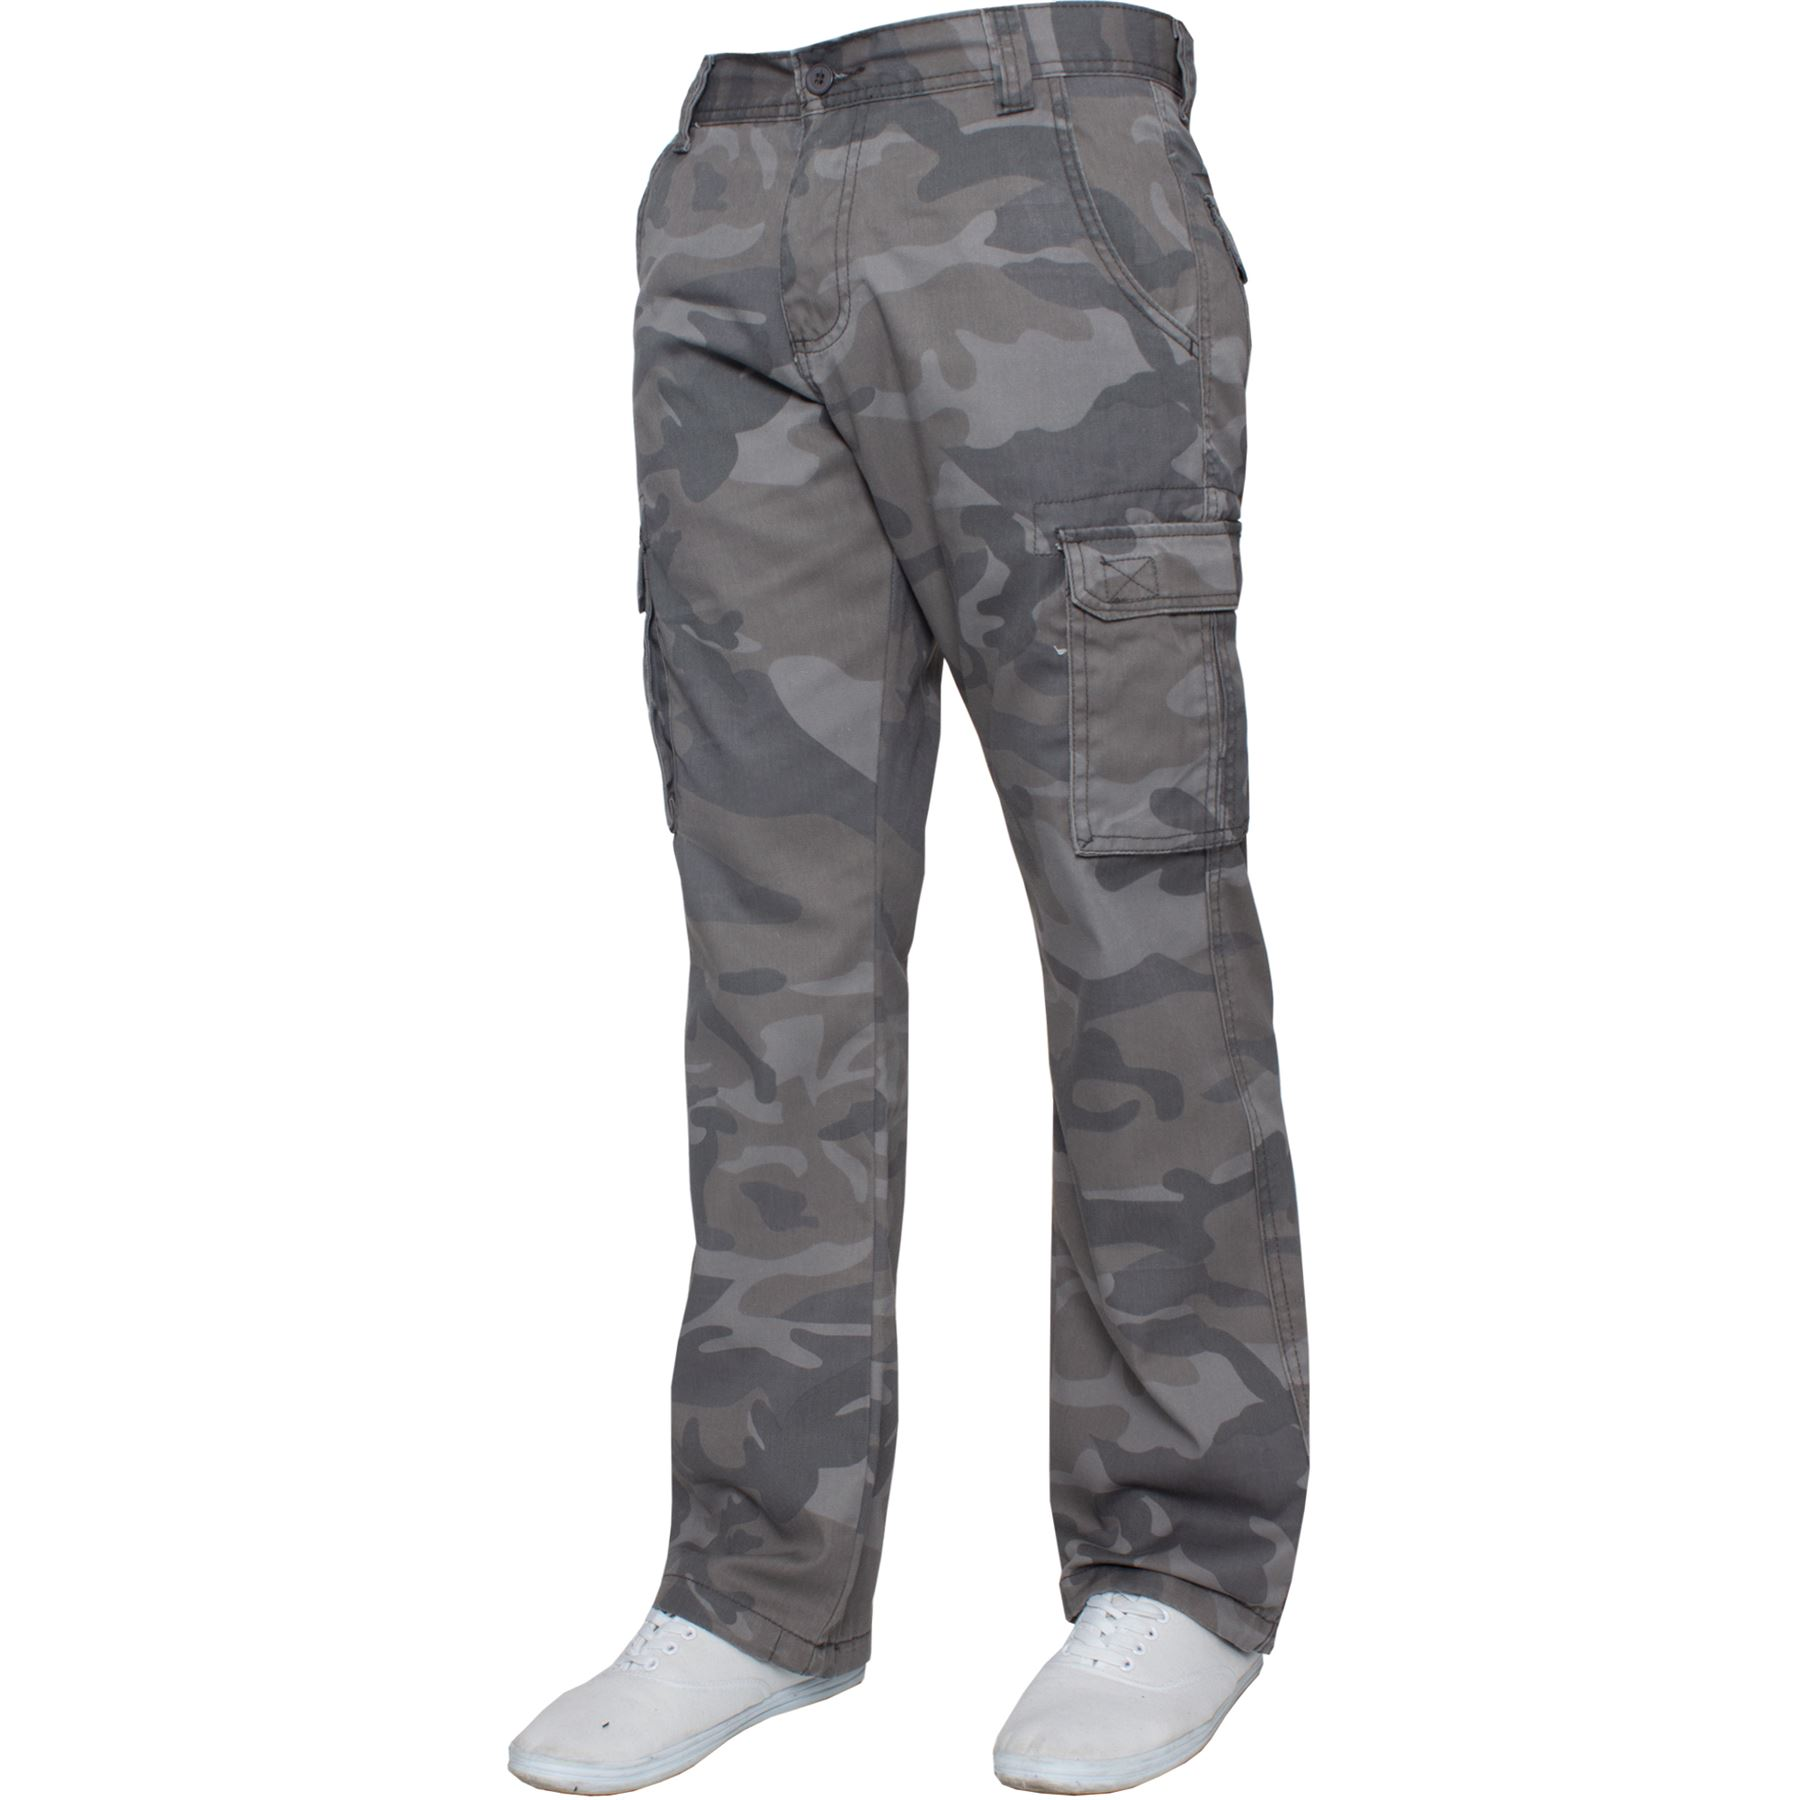 Kruze-Mens-Military-Combat-Trousers-Camouflage-Cargo-Camo-Army-Casual-Work-Pants miniatura 9